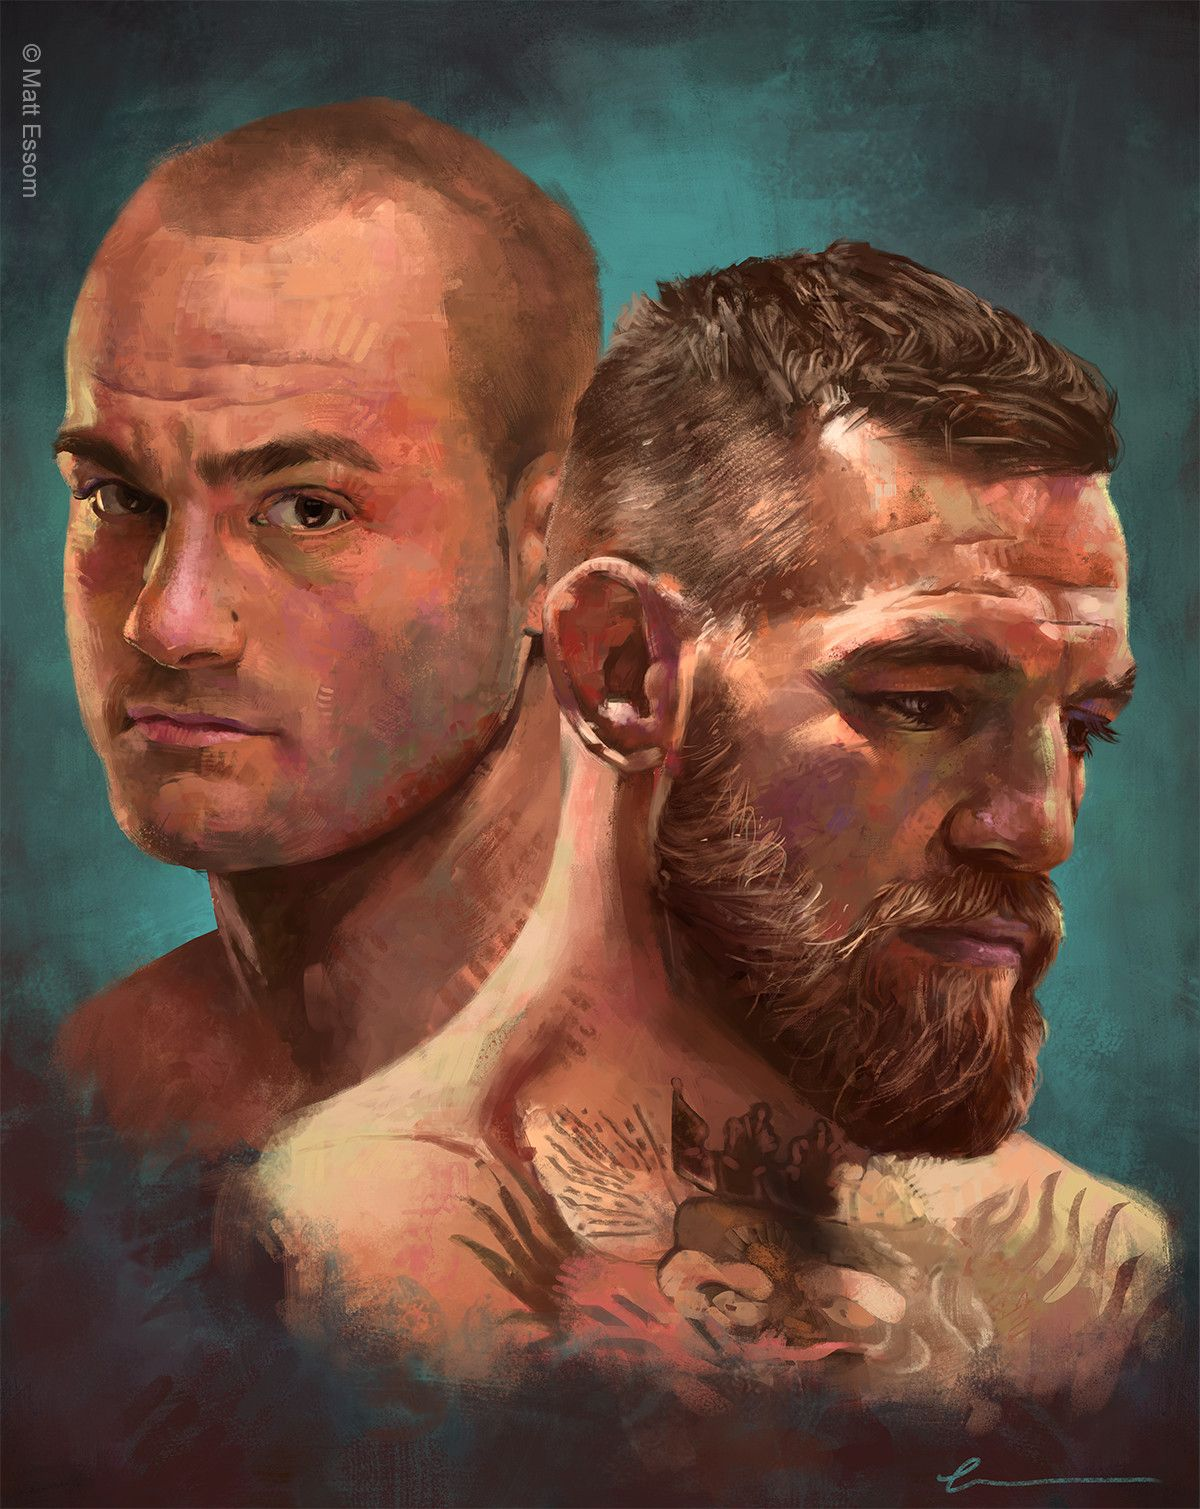 Artstation Mystic Mac Matt Essom Digital Portrait Ufc Poster Art